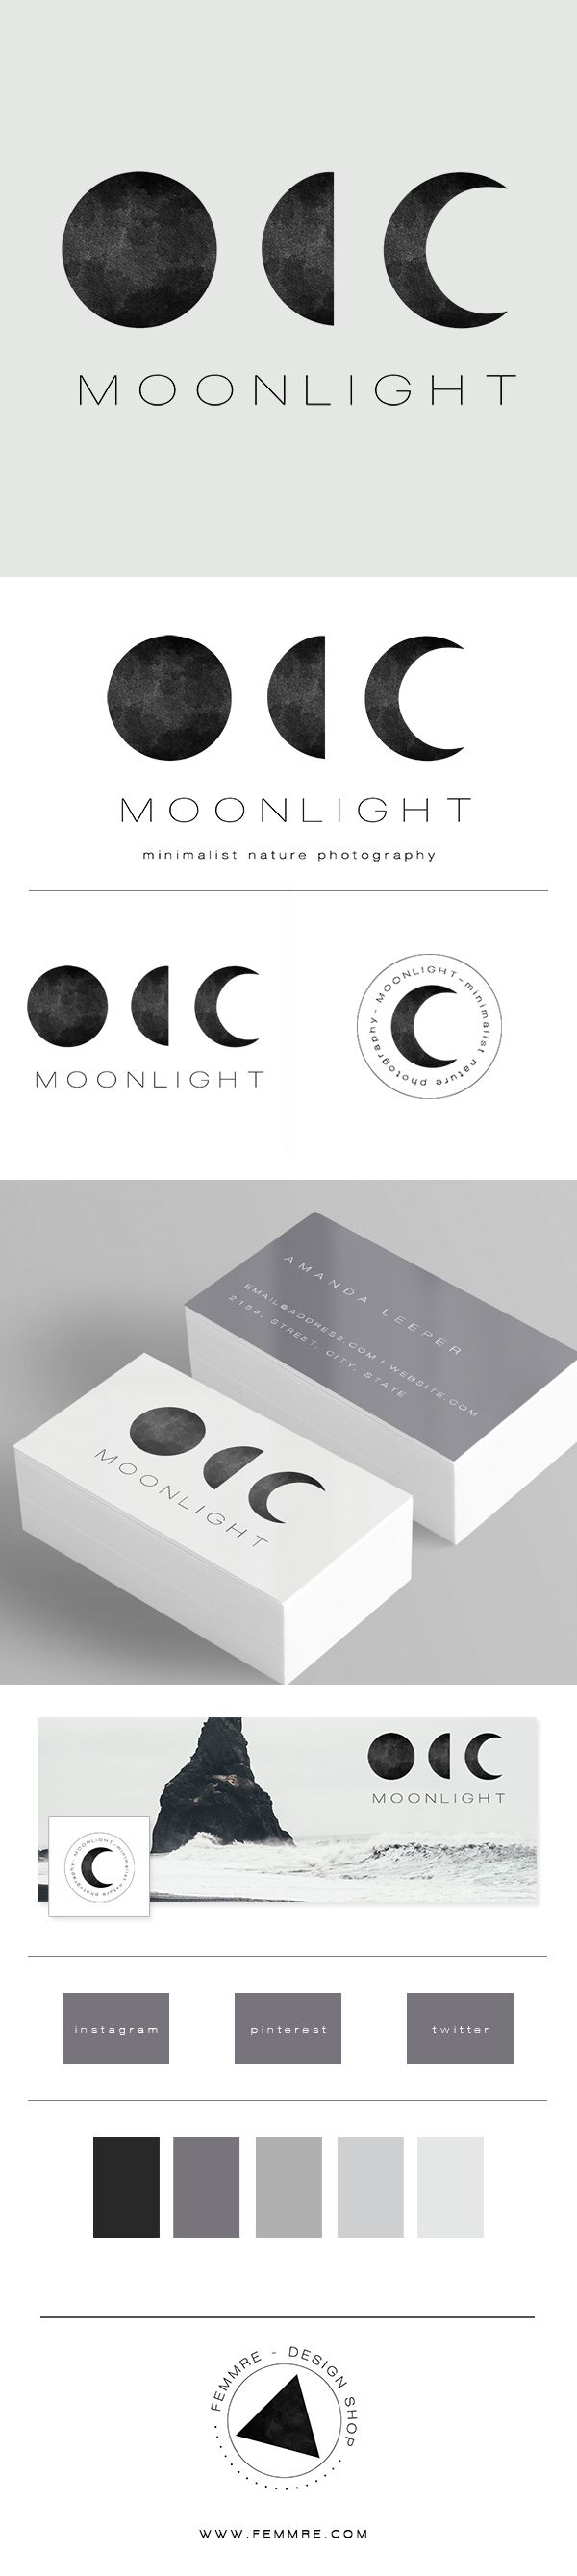 Moonlight Photographer Premade Brand Launch (sold only once) | FEMMRE - Chic…